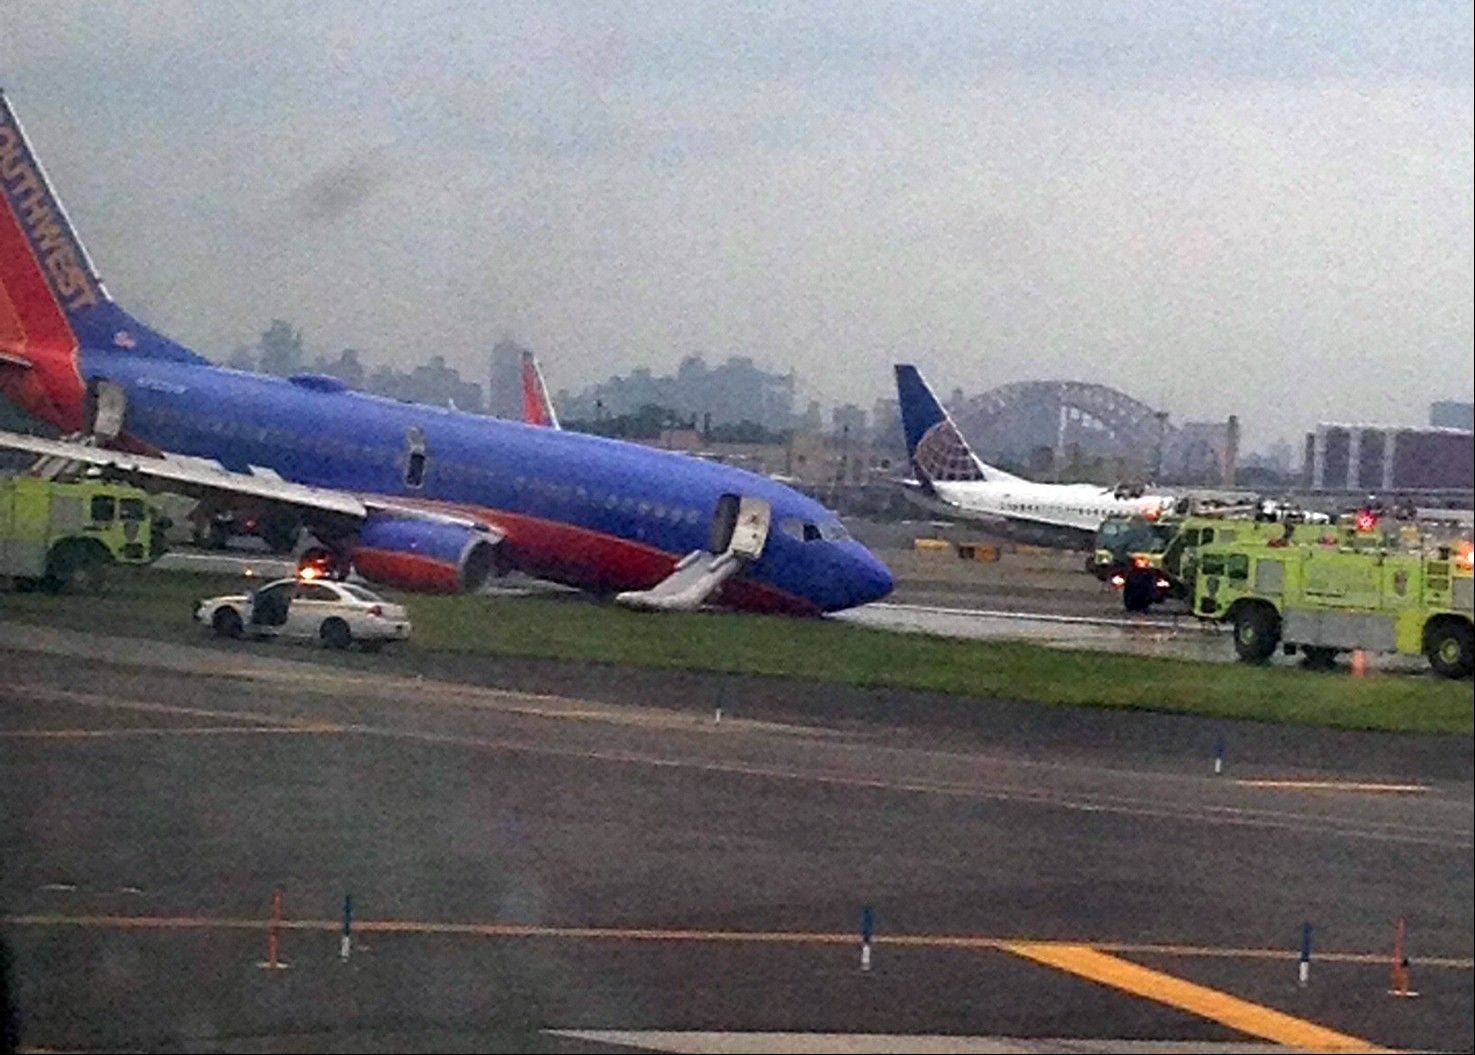 ASSOCIATED PRESS/Jared RosensteinA Southwest Airlines plane whose nose gear collapsed as it touched down on the runway is surrounded by emergency vehicles at LaGuardia Airport in New York on Monday. The plane was carrying 149 passengers and crew.